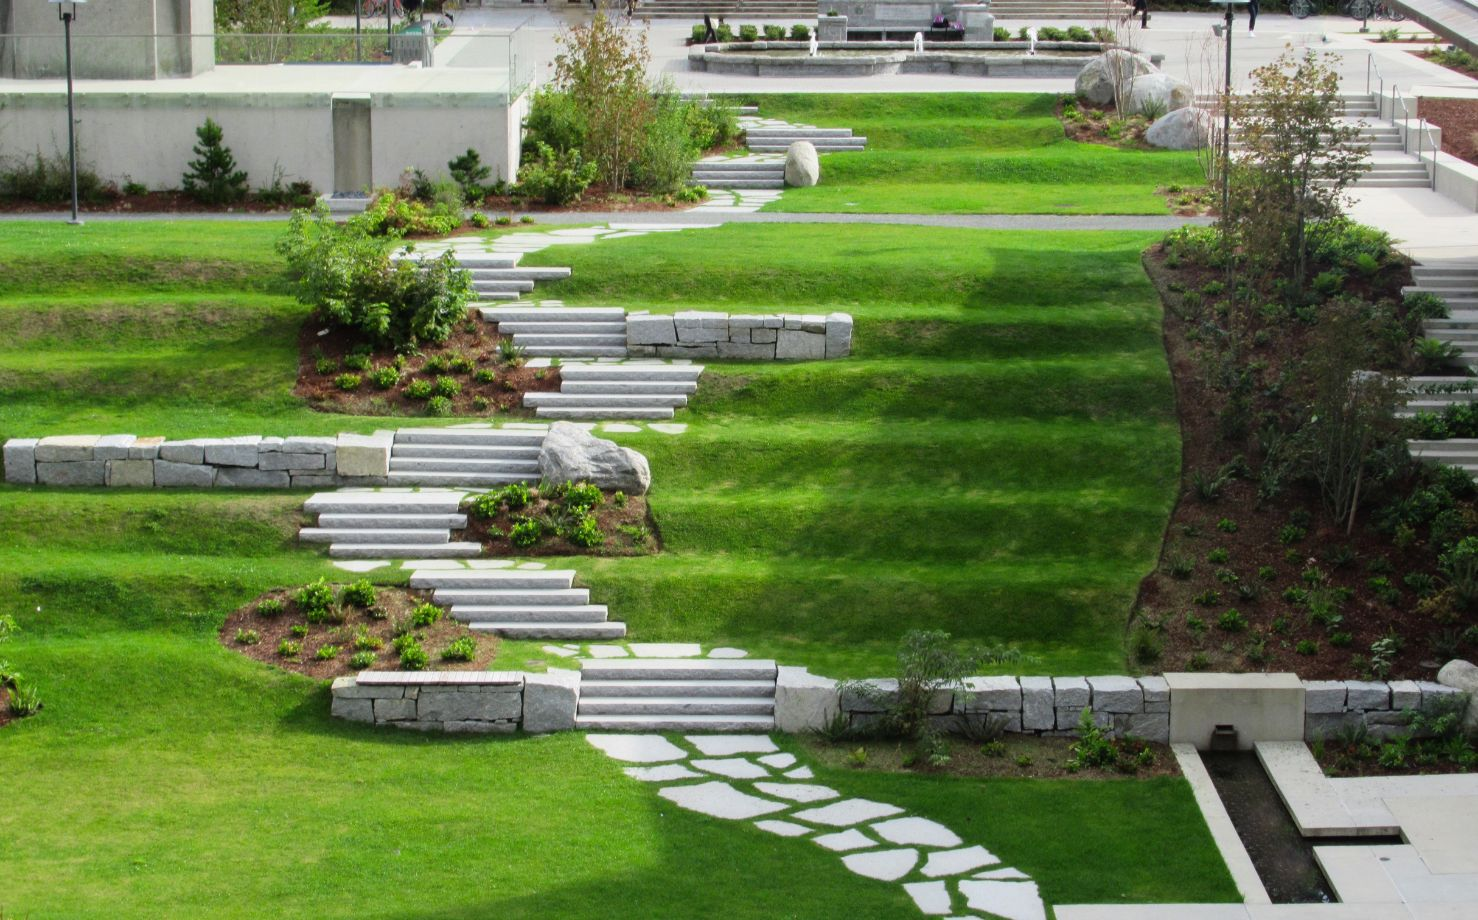 Landscape consulting job - backyard turf with stone walkway 2 - Mornington Peninsula